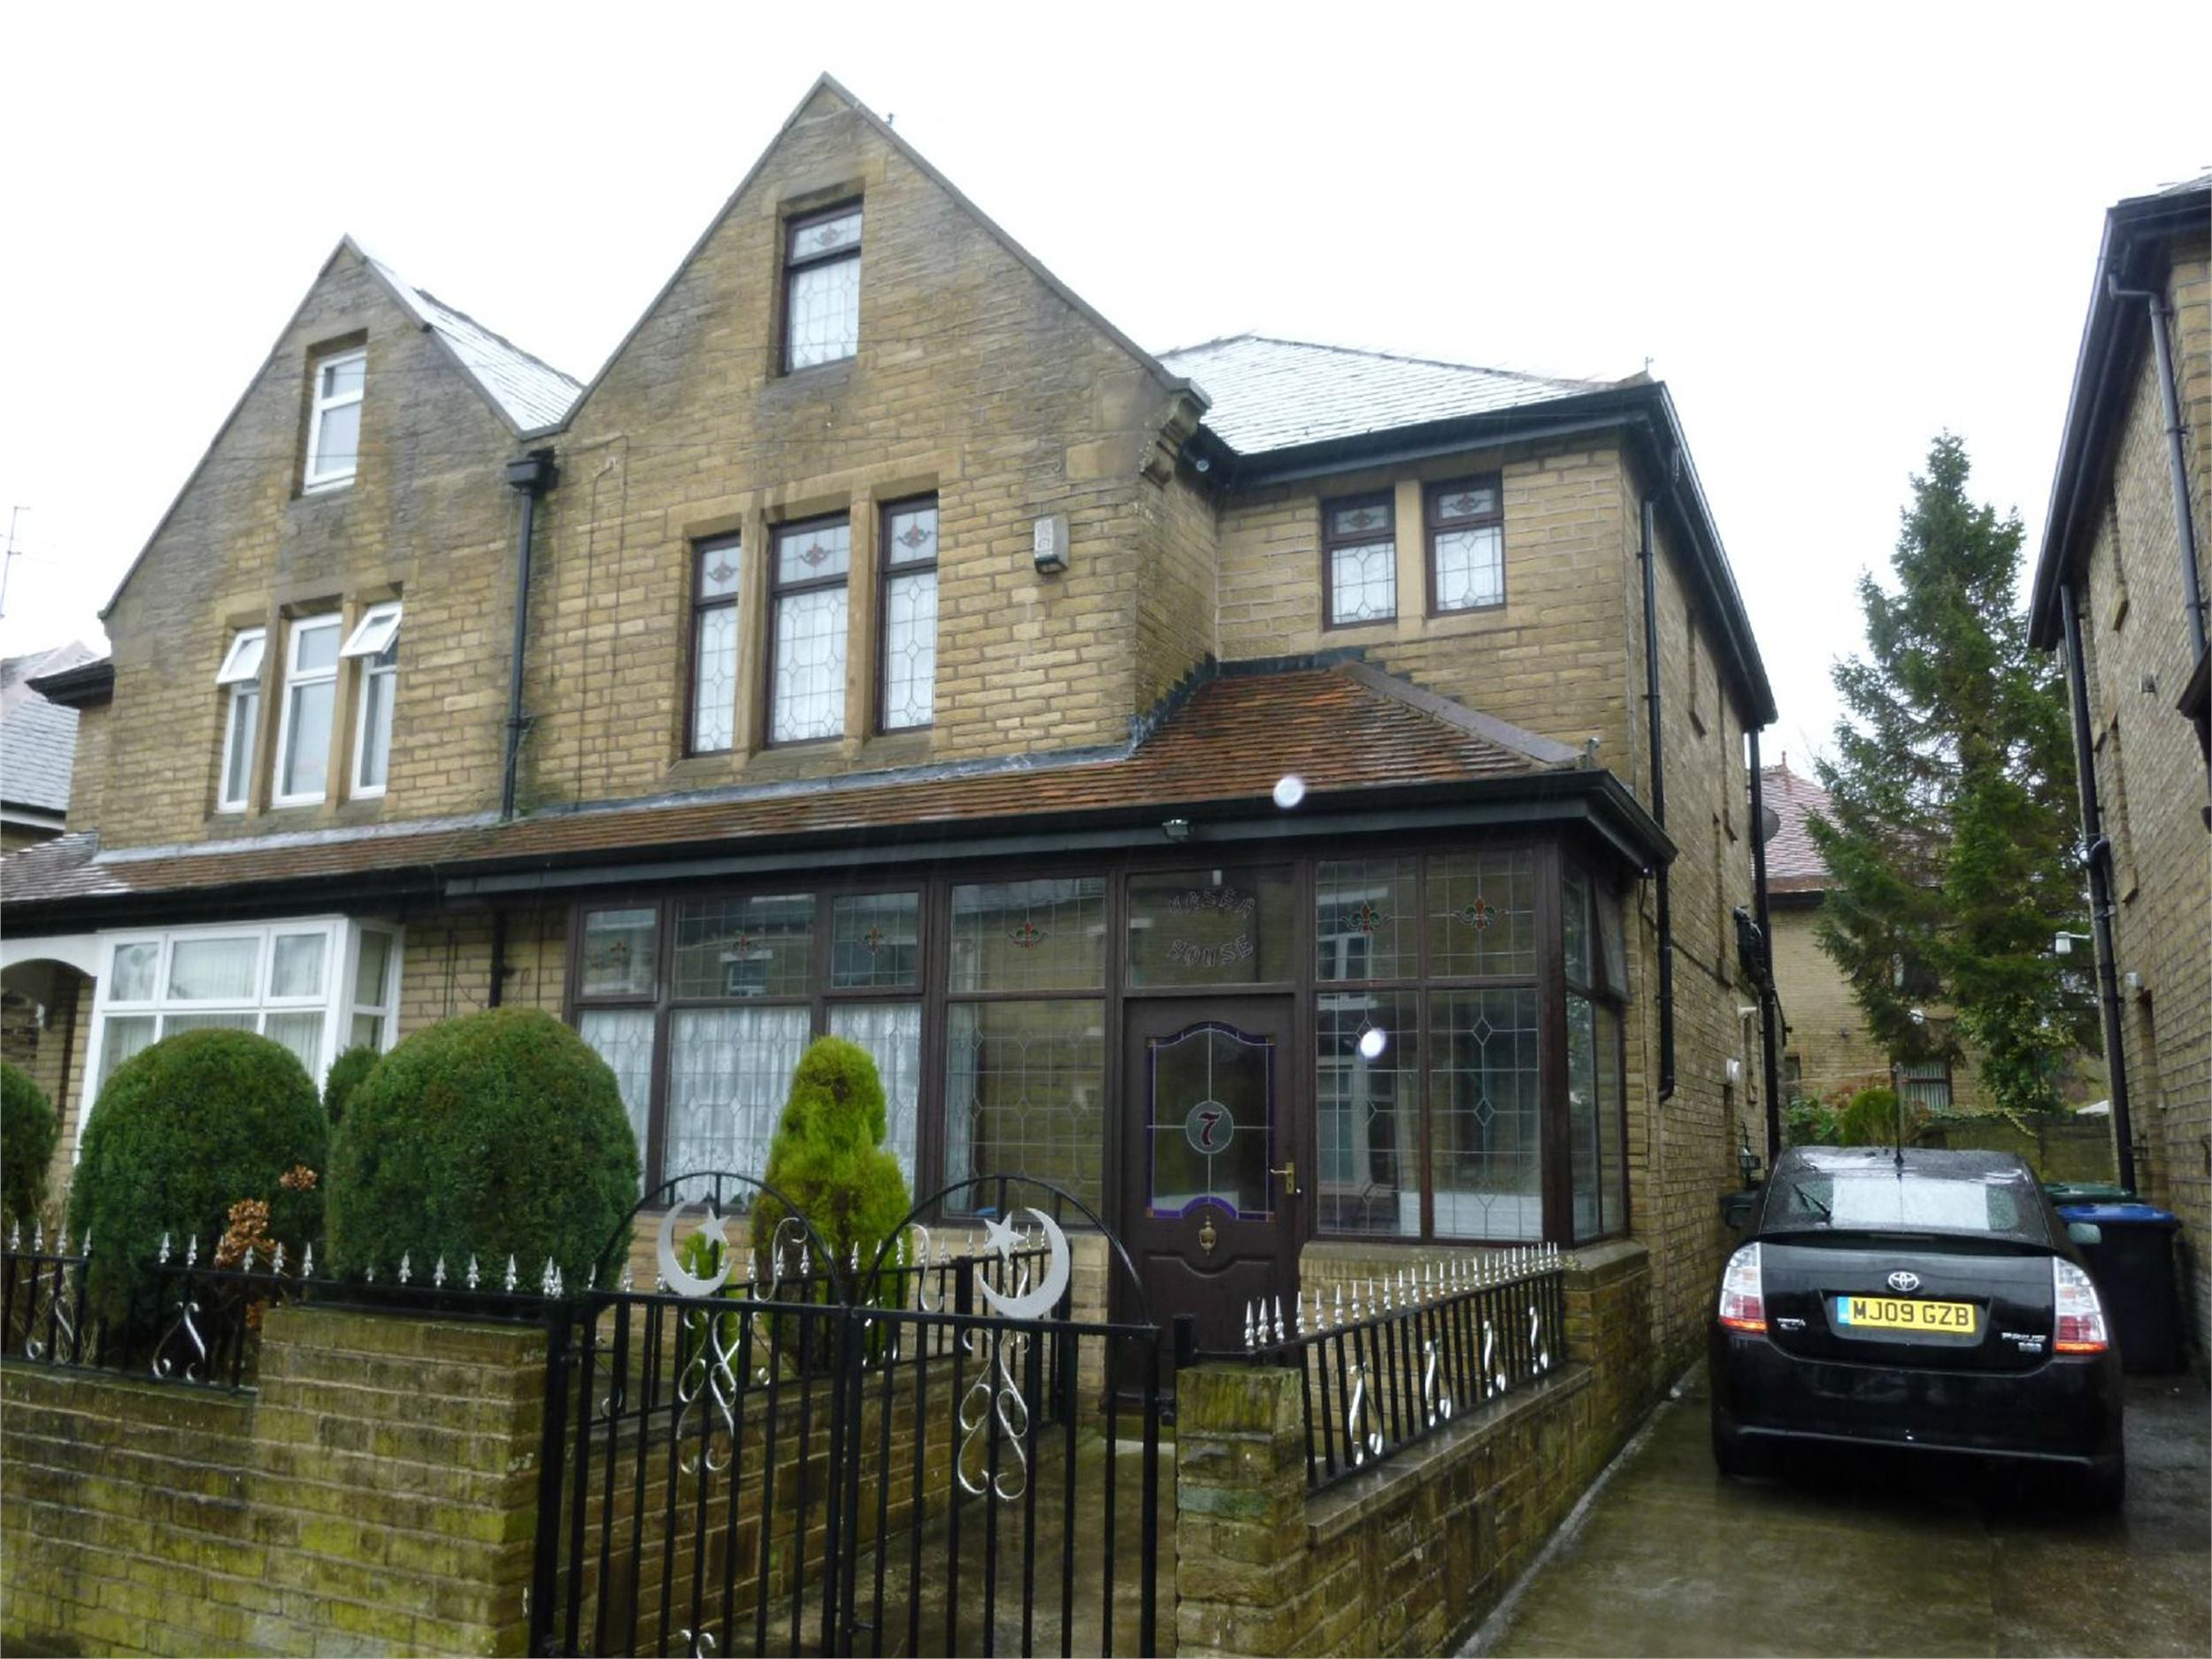 Yorkshire Terrace: Whitegates Bradford 5 Bedroom Semi-Detached House For Sale